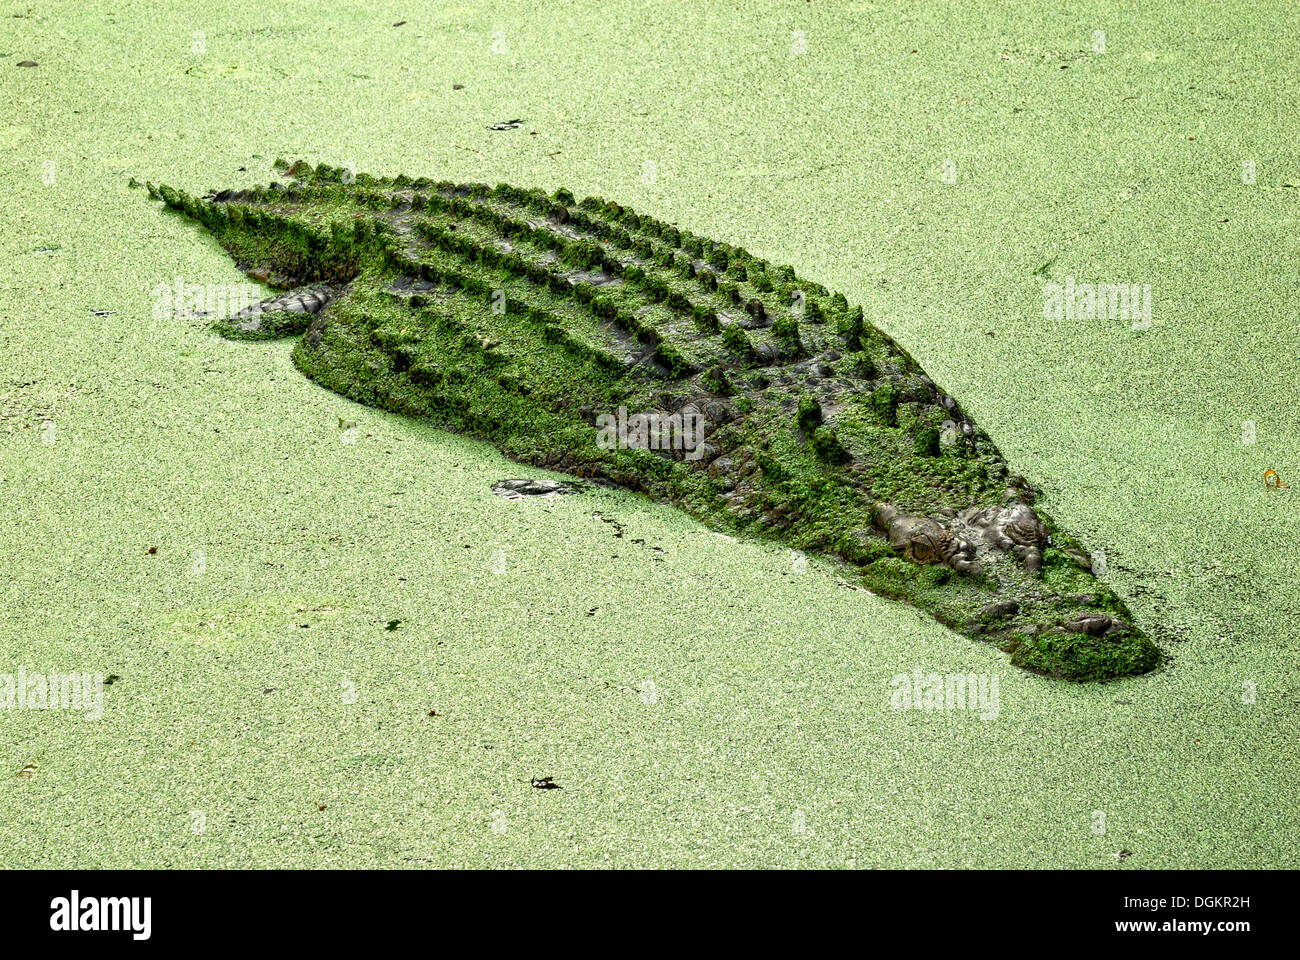 Saltwater or estuarine crocodile (Crocodylus porosus), in backwater covered with duckweed (Lemna minor), Billabong Sanctuary - Stock Image